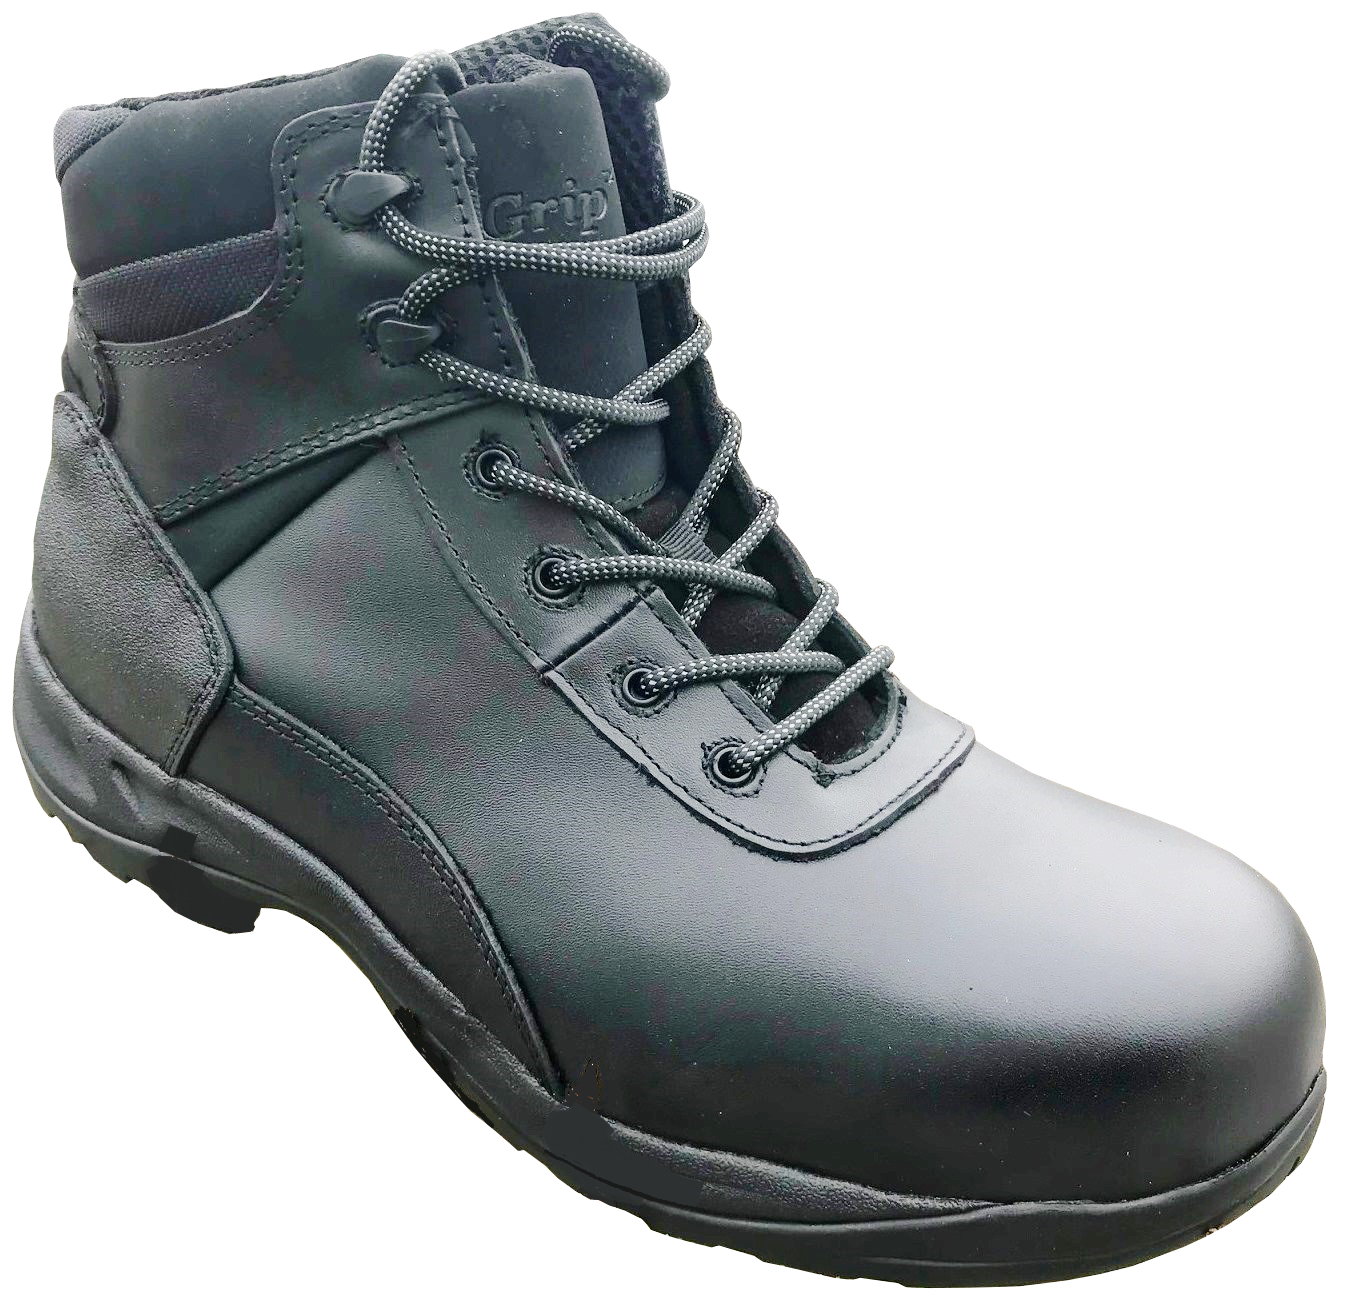 K56580 CHAMPION COMPOSITE BLACK BOOT